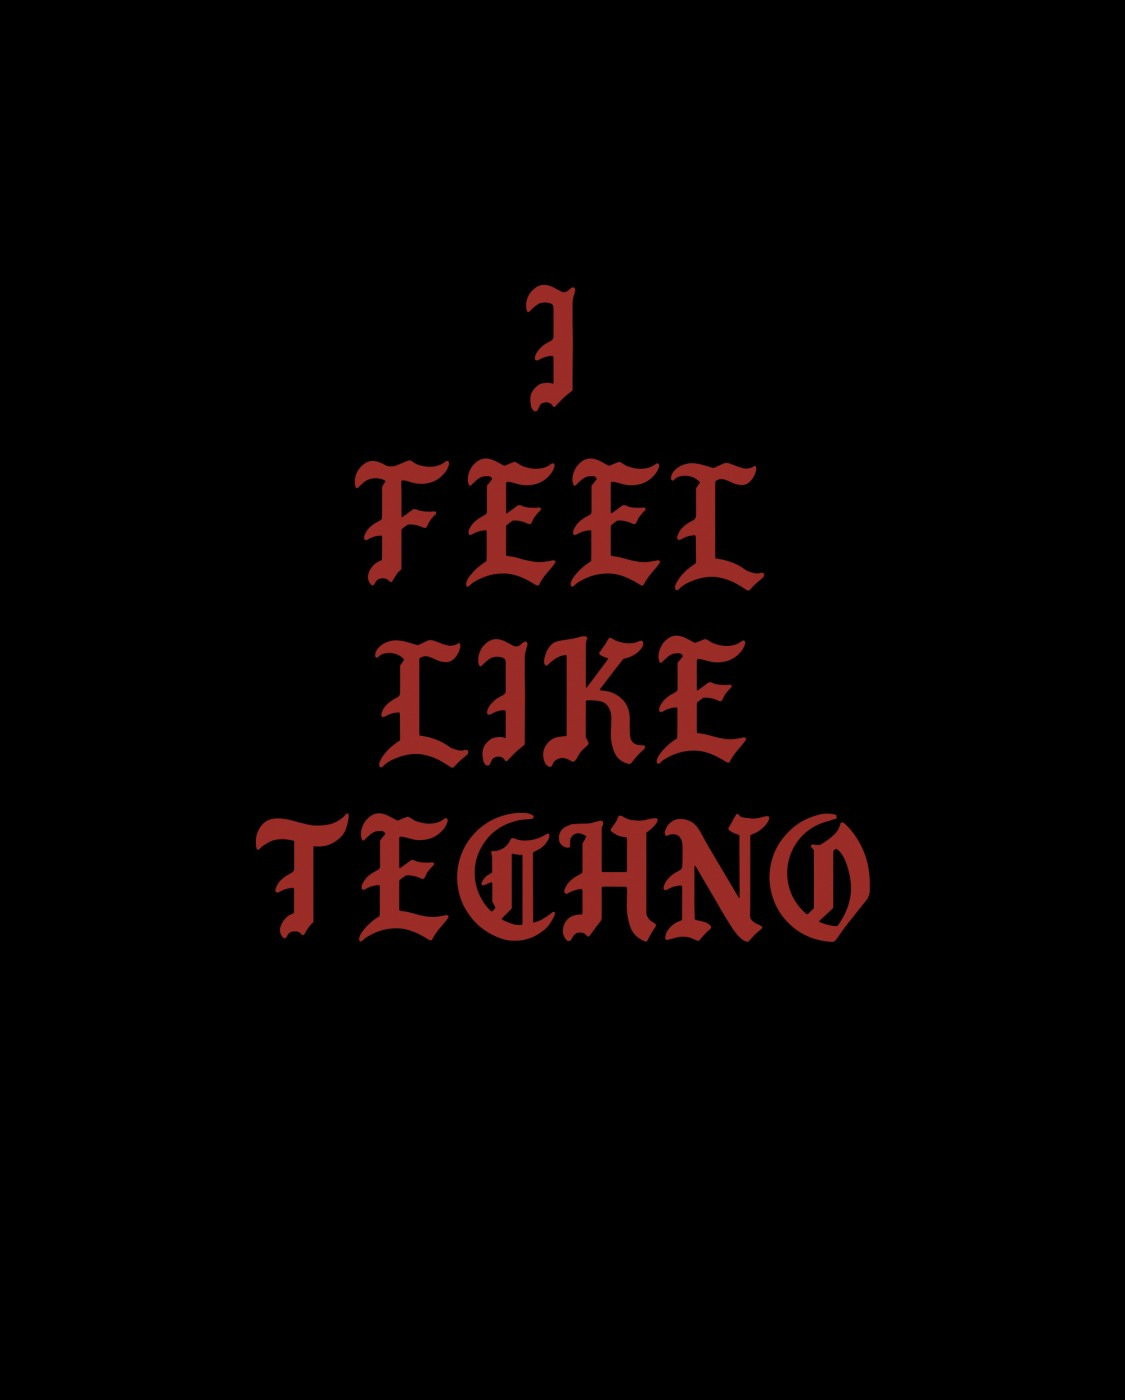 I FEEL LIKE TECHNO